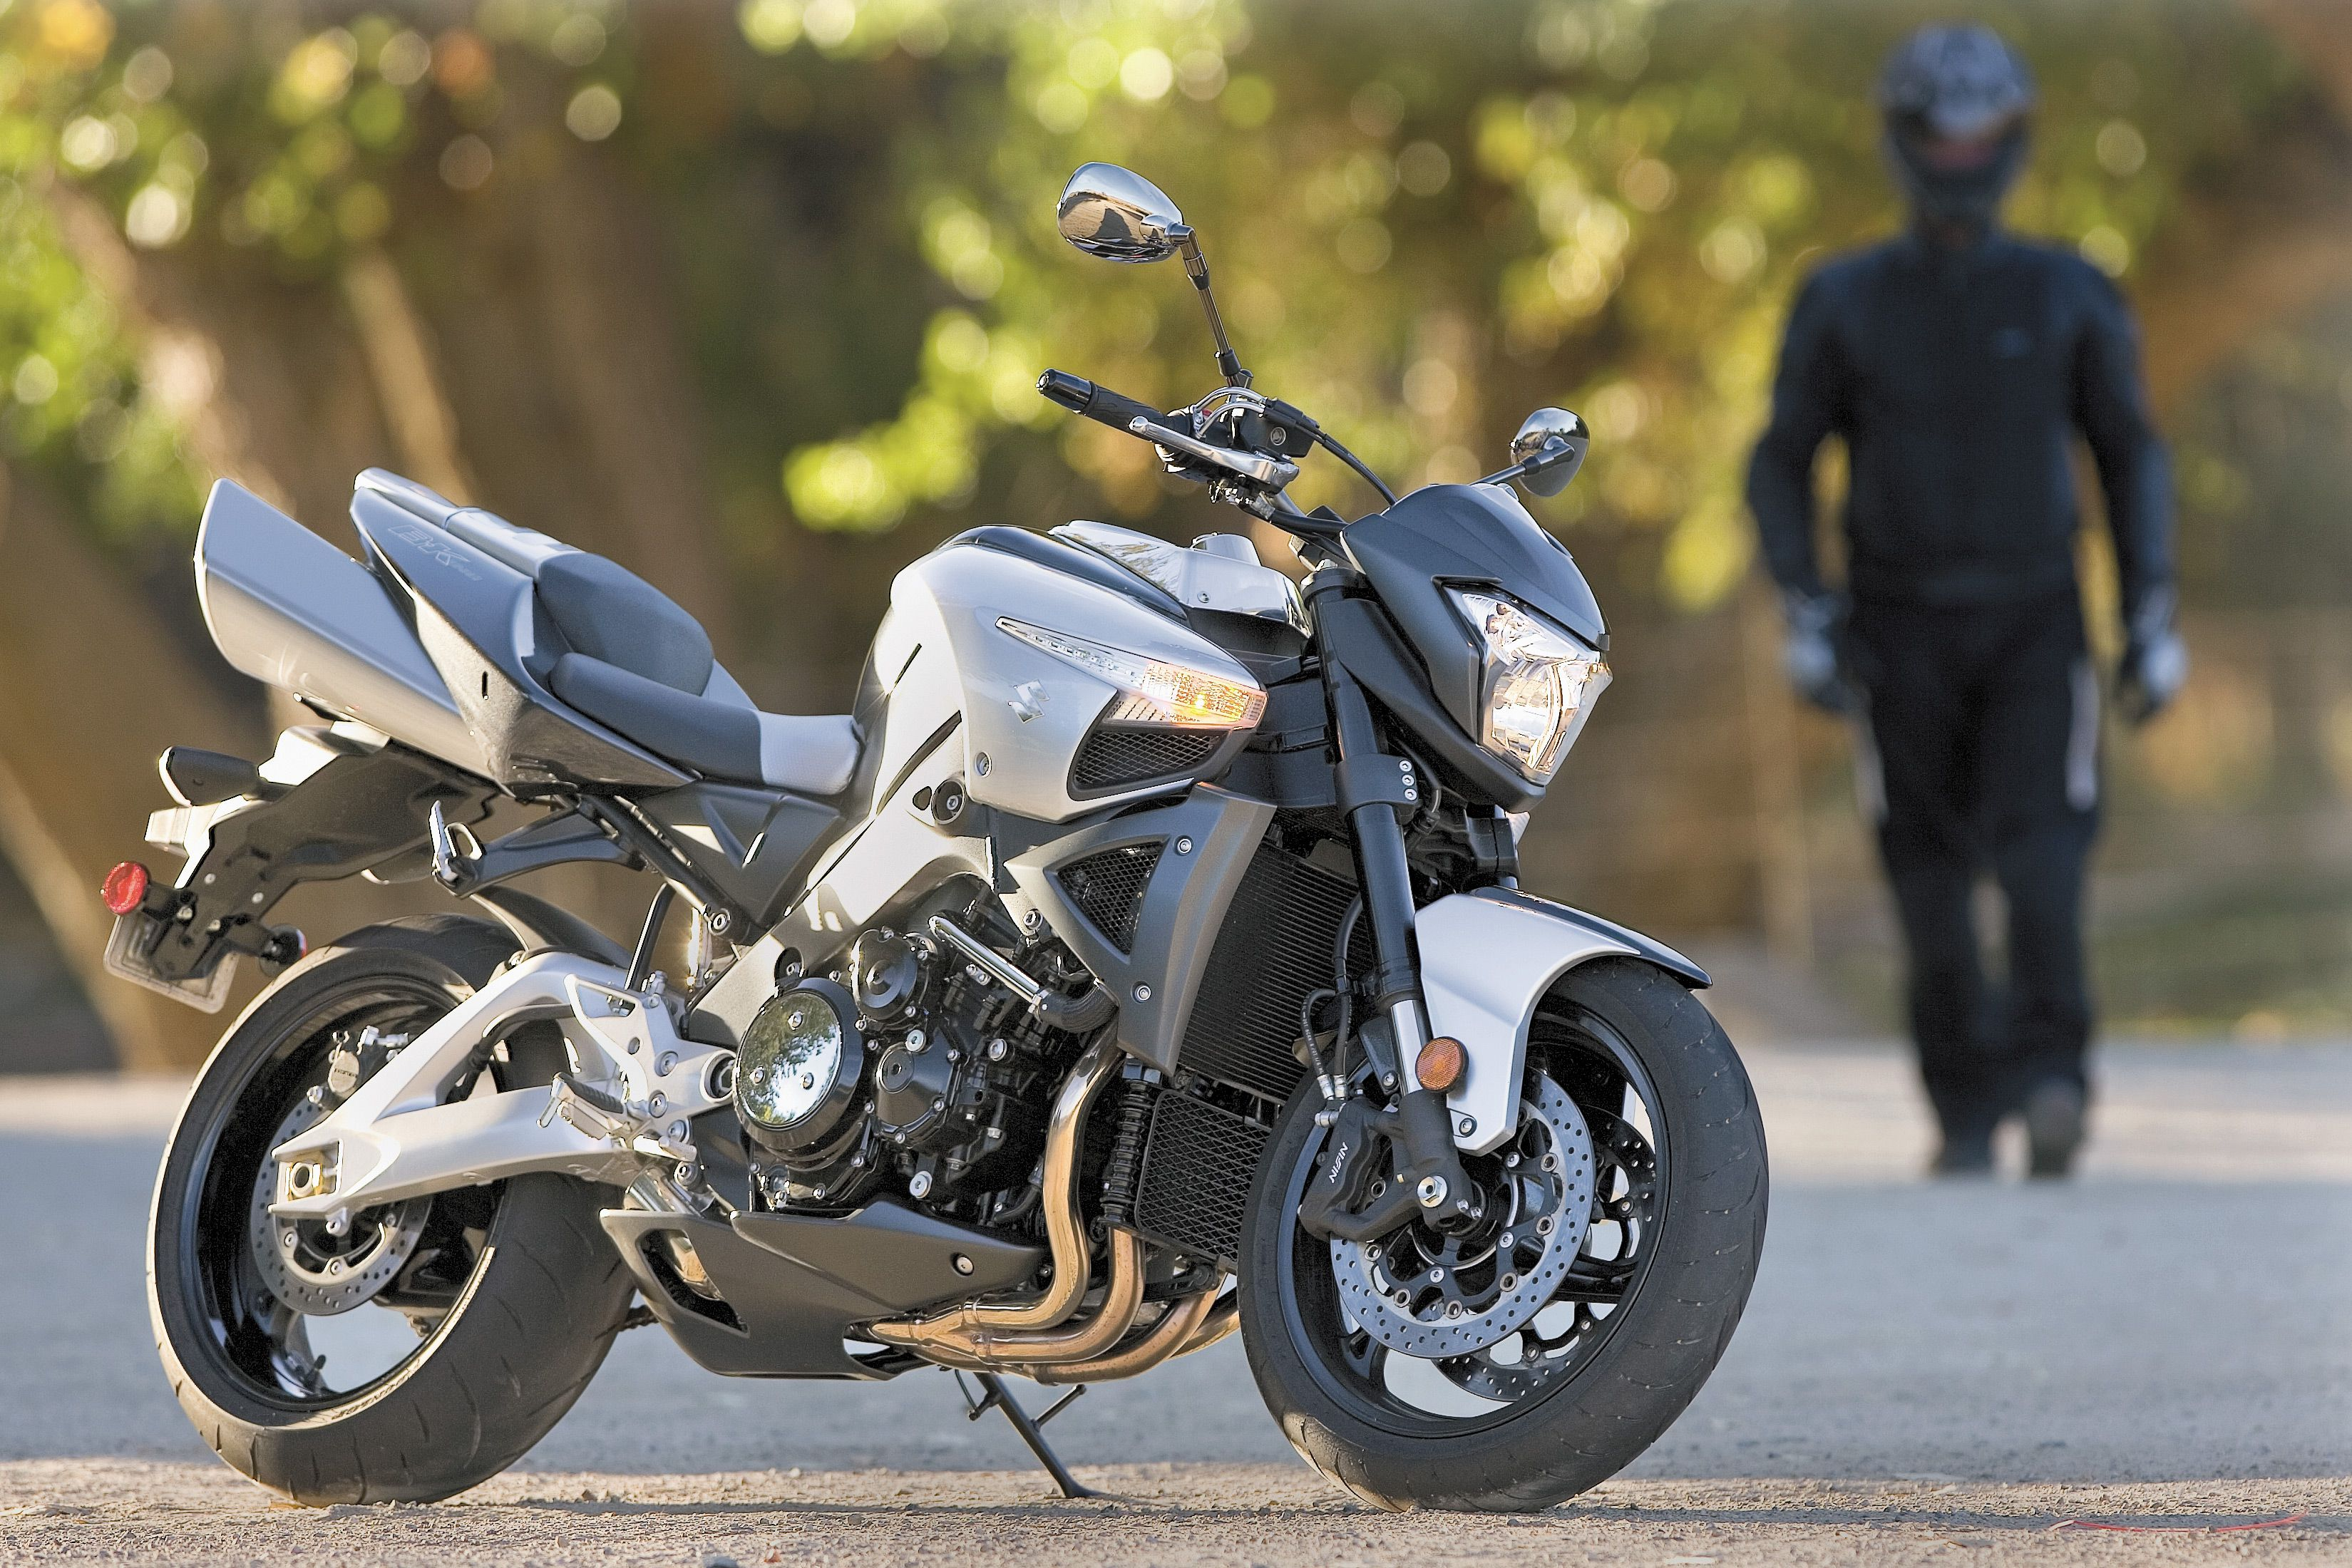 Still pretty outlandish, the B-King had a Hayabusa engine in an anime-inspired naked bike.